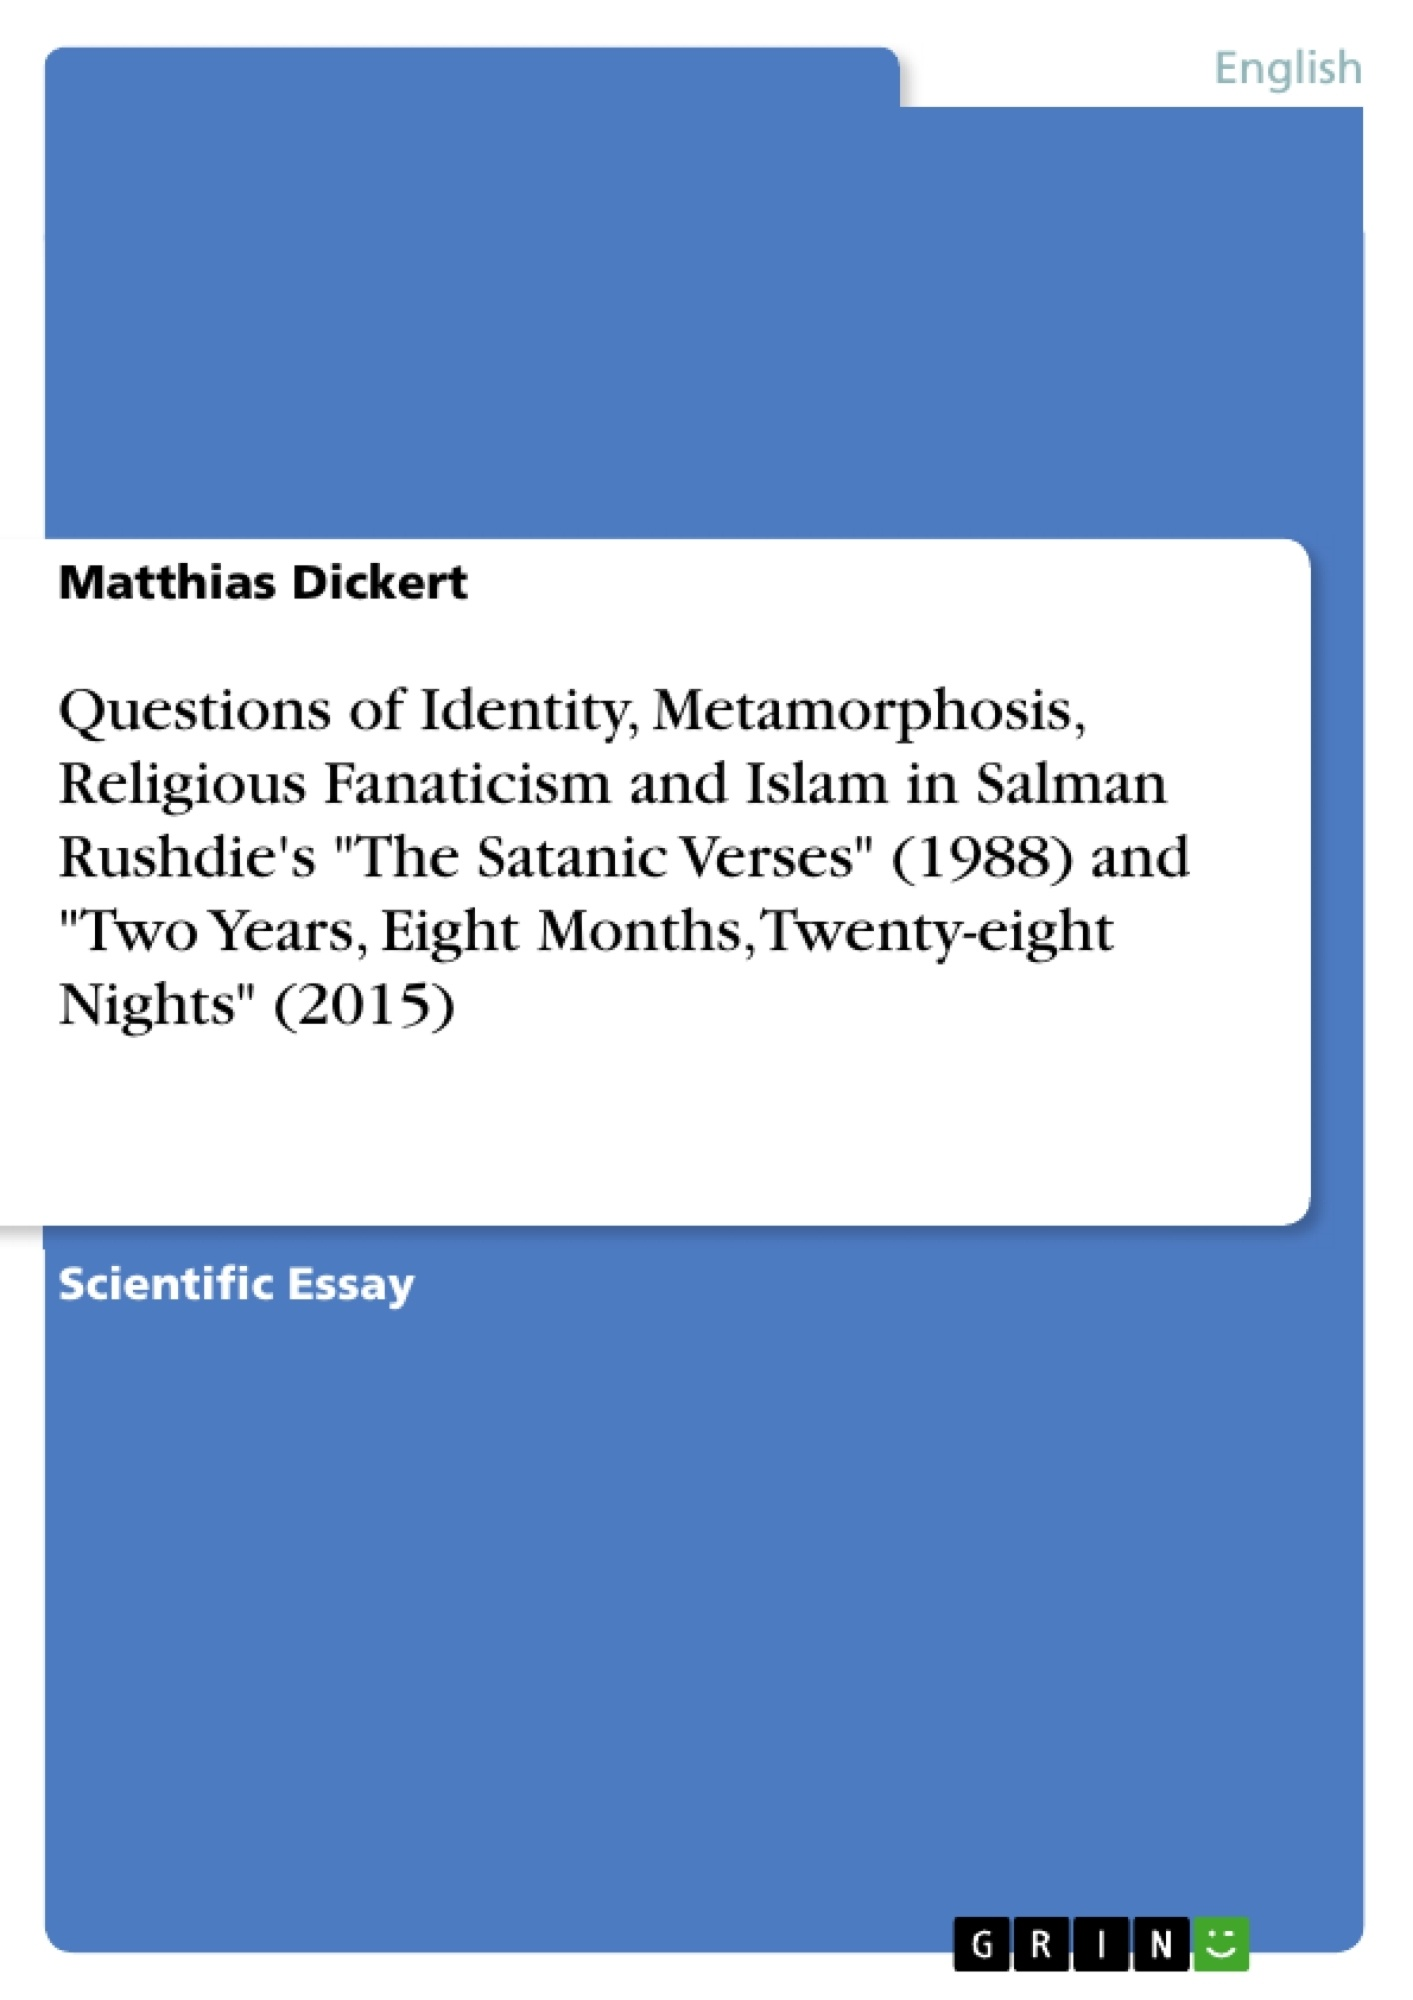 """Title: Questions of Identity, Metamorphosis, Religious Fanaticism and Islam in Salman Rushdie's """"The Satanic Verses"""" (1988) and """"Two Years, Eight Months, Twenty-eight Nights"""" (2015)"""